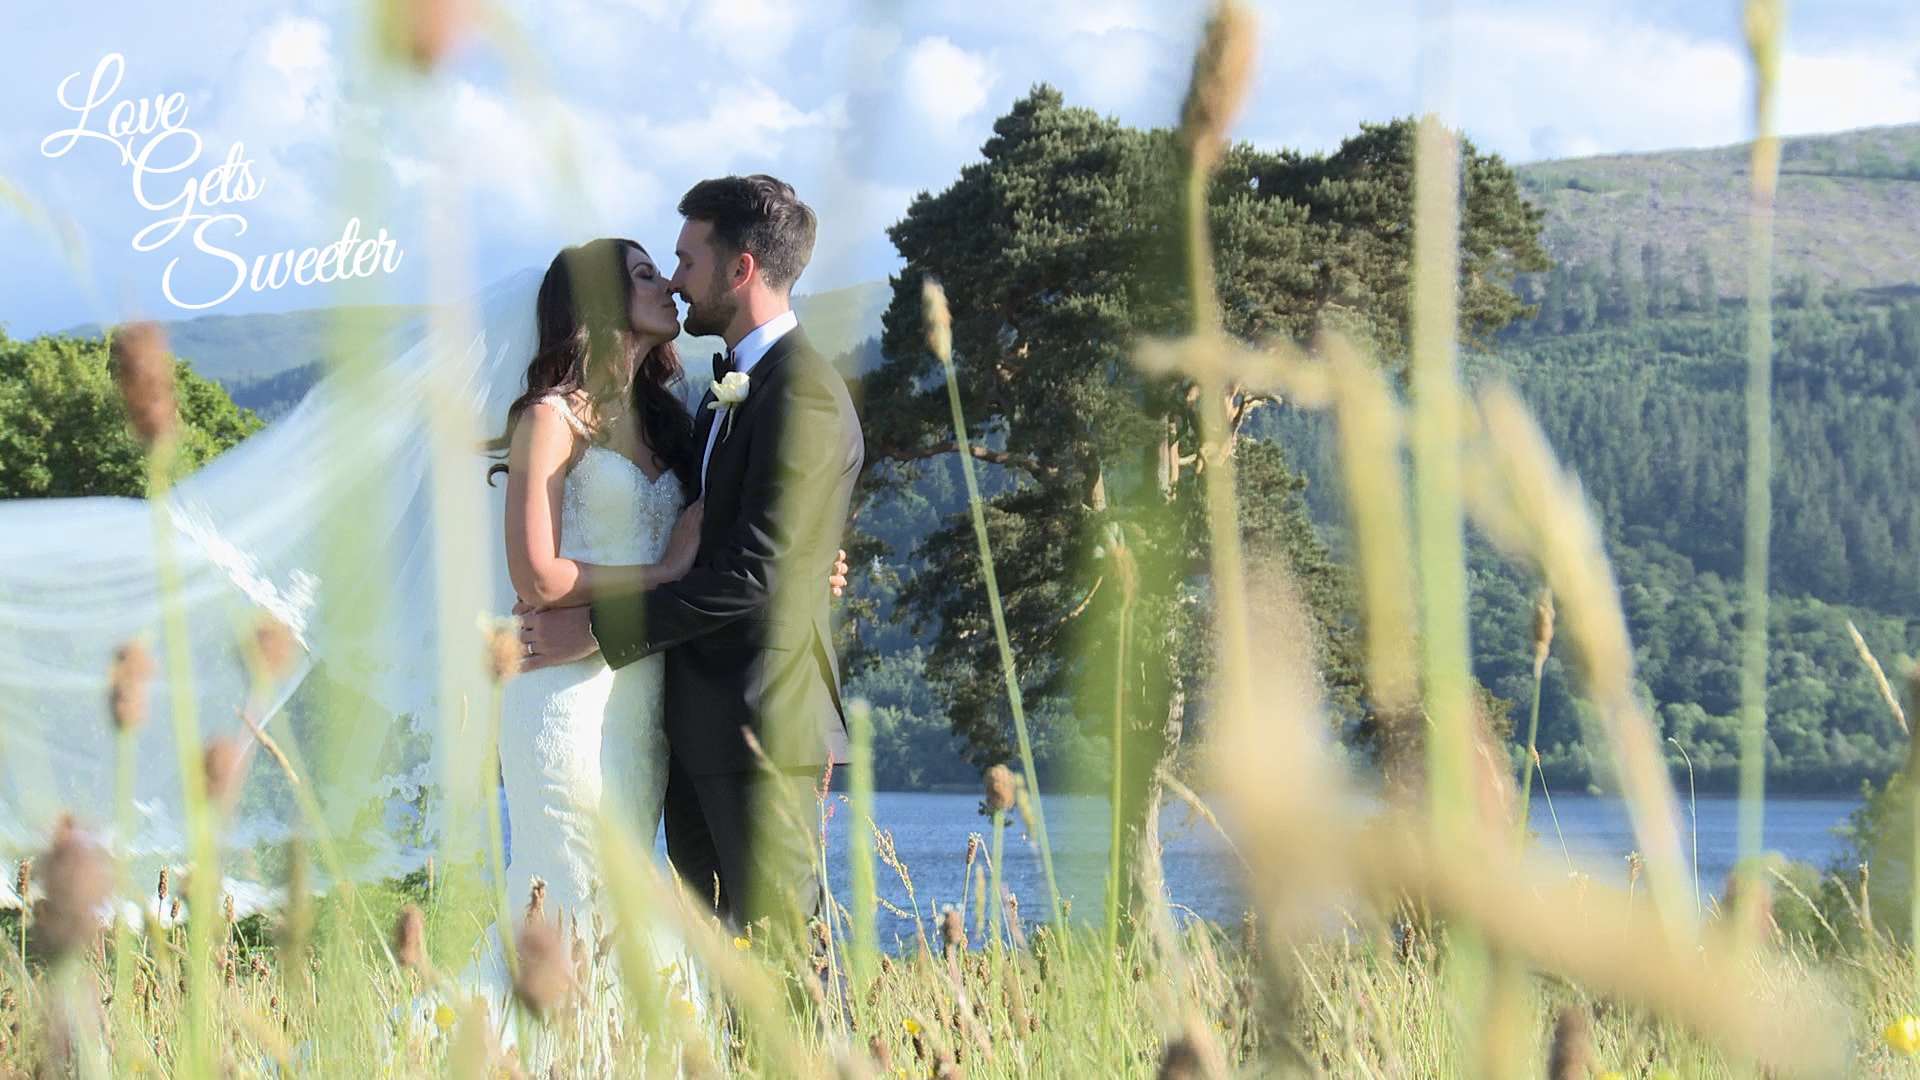 An Elegant and Stylish Lakes Wedding Video